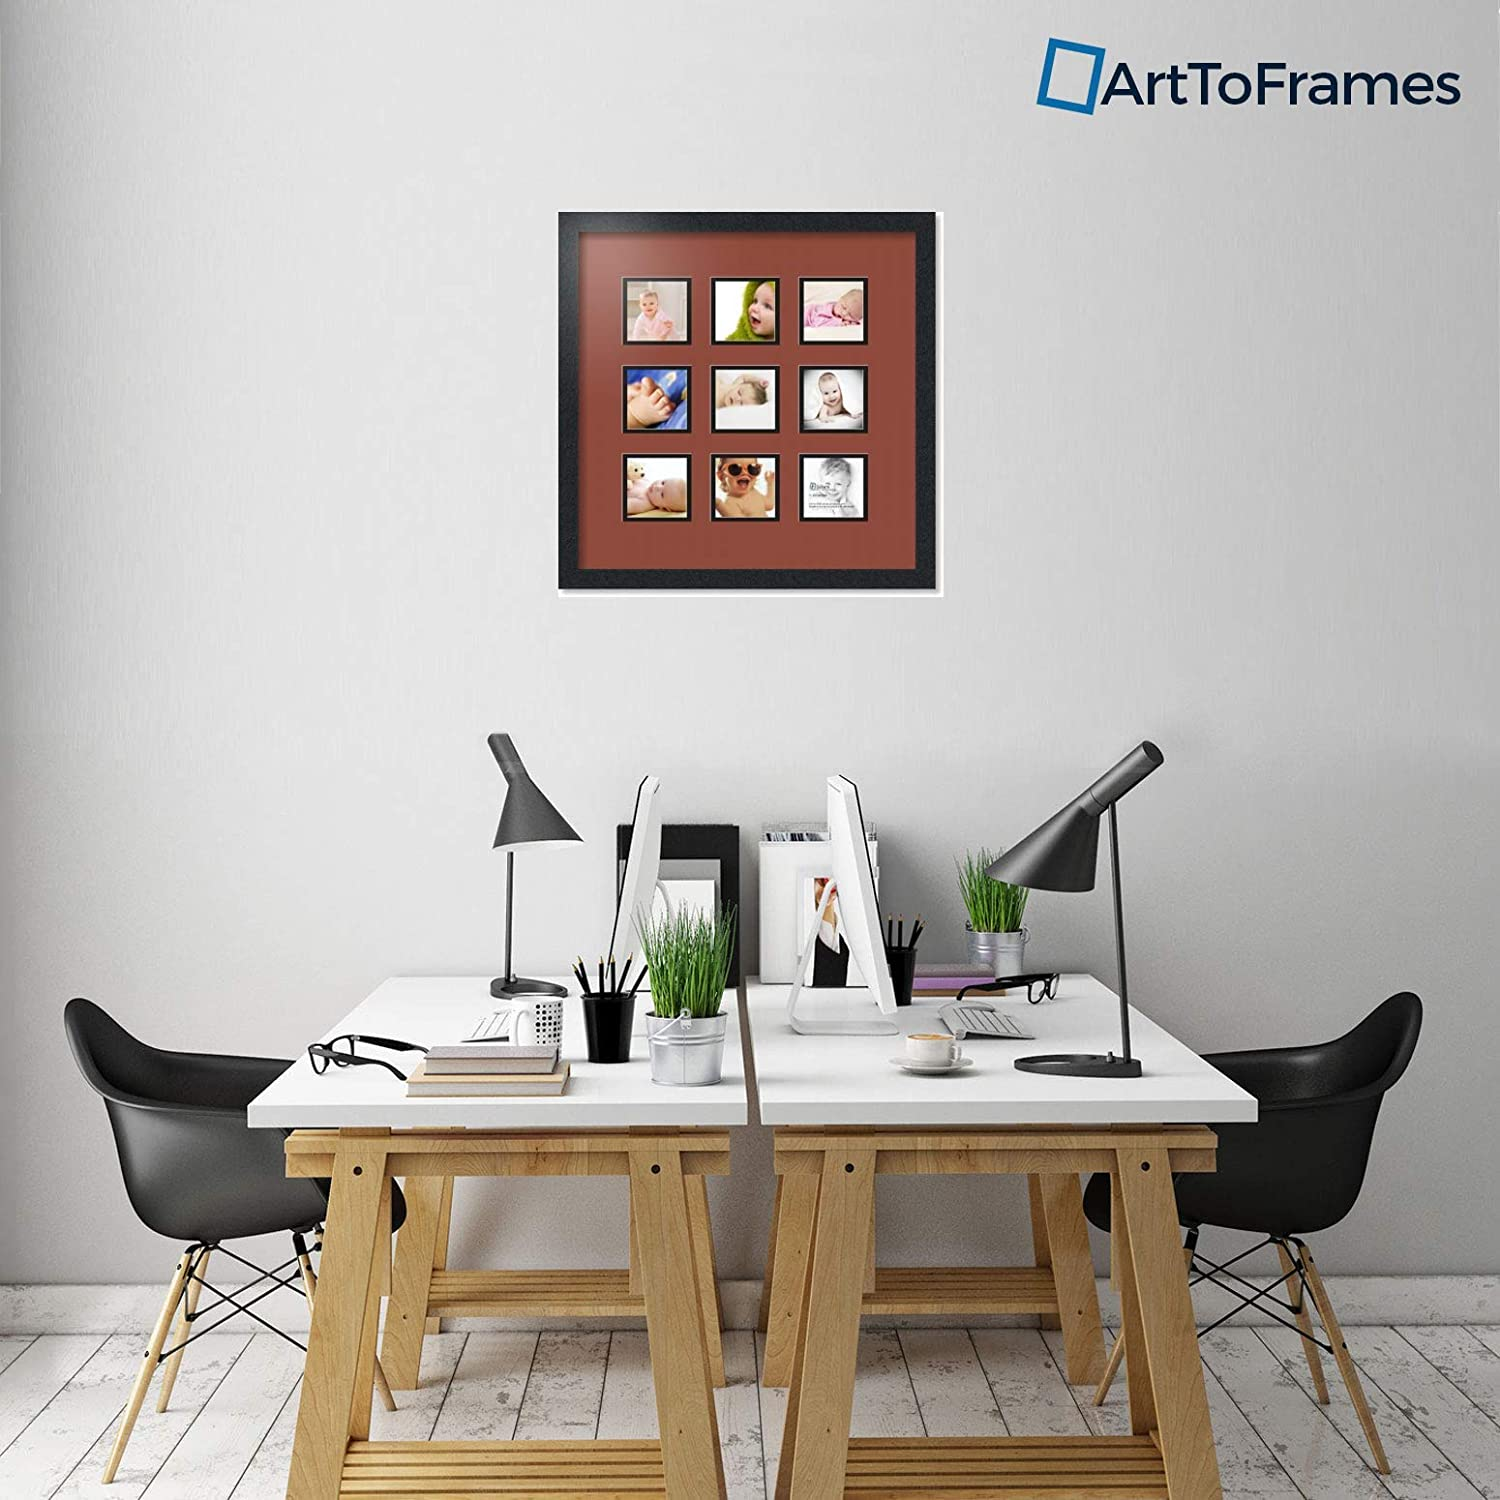 Art to Frames Double-Multimat-73-766//89-FRBW26079 Collage Photo Frame Double Mat with 9-4x4 Openings and Satin Black Frame